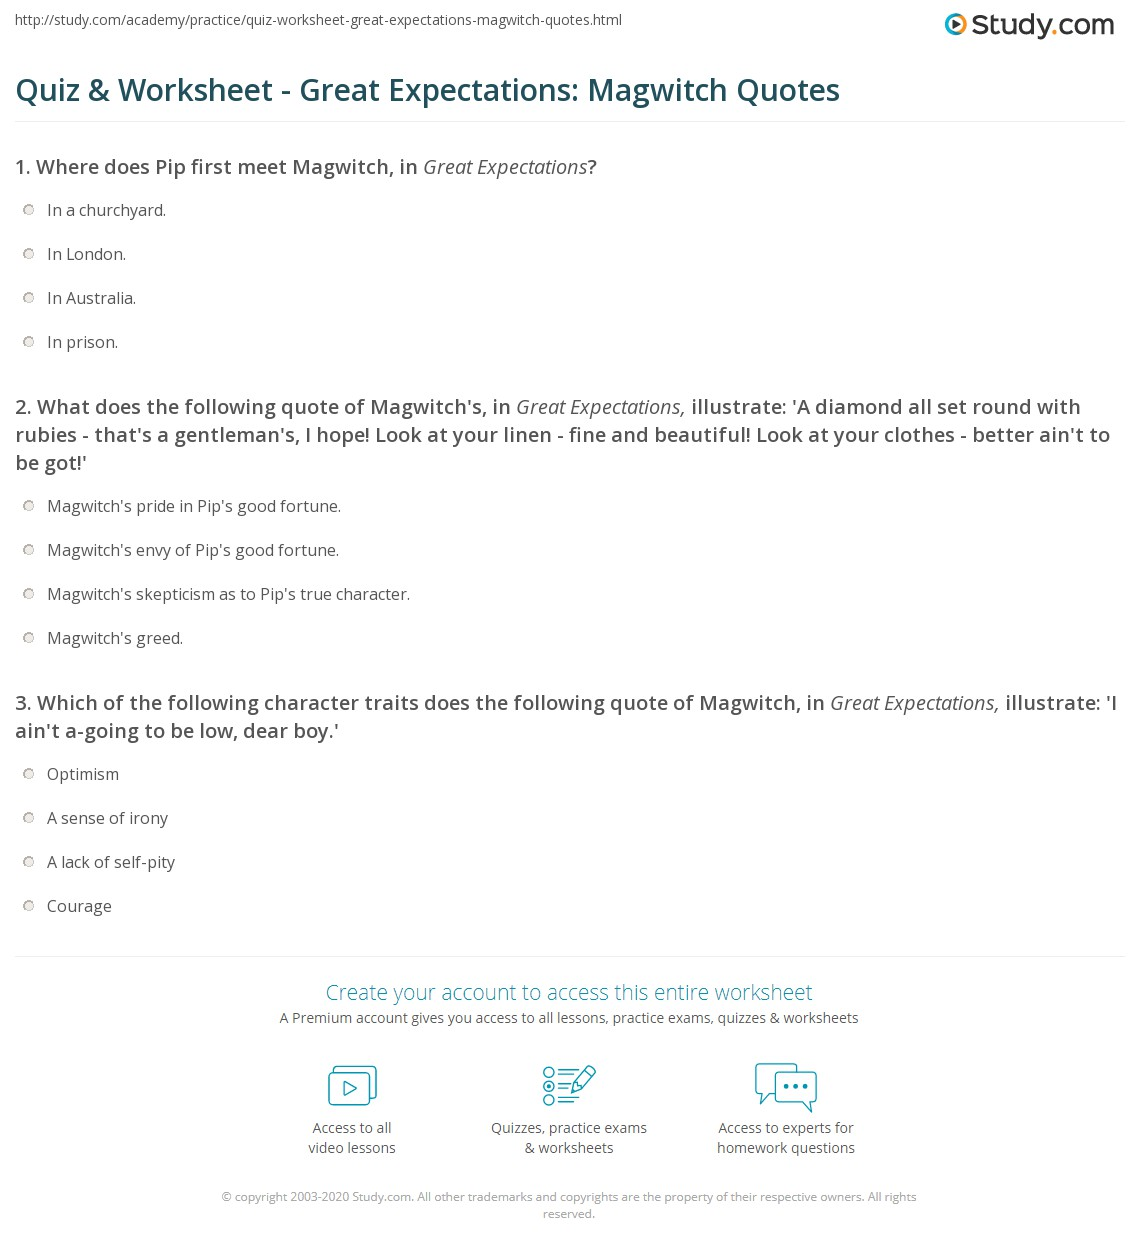 quiz worksheet great expectations magwitch quotes com what does the following quote of magwitch s in great expectations illustrate a diamond all set round rubies that s a gentleman s i hope